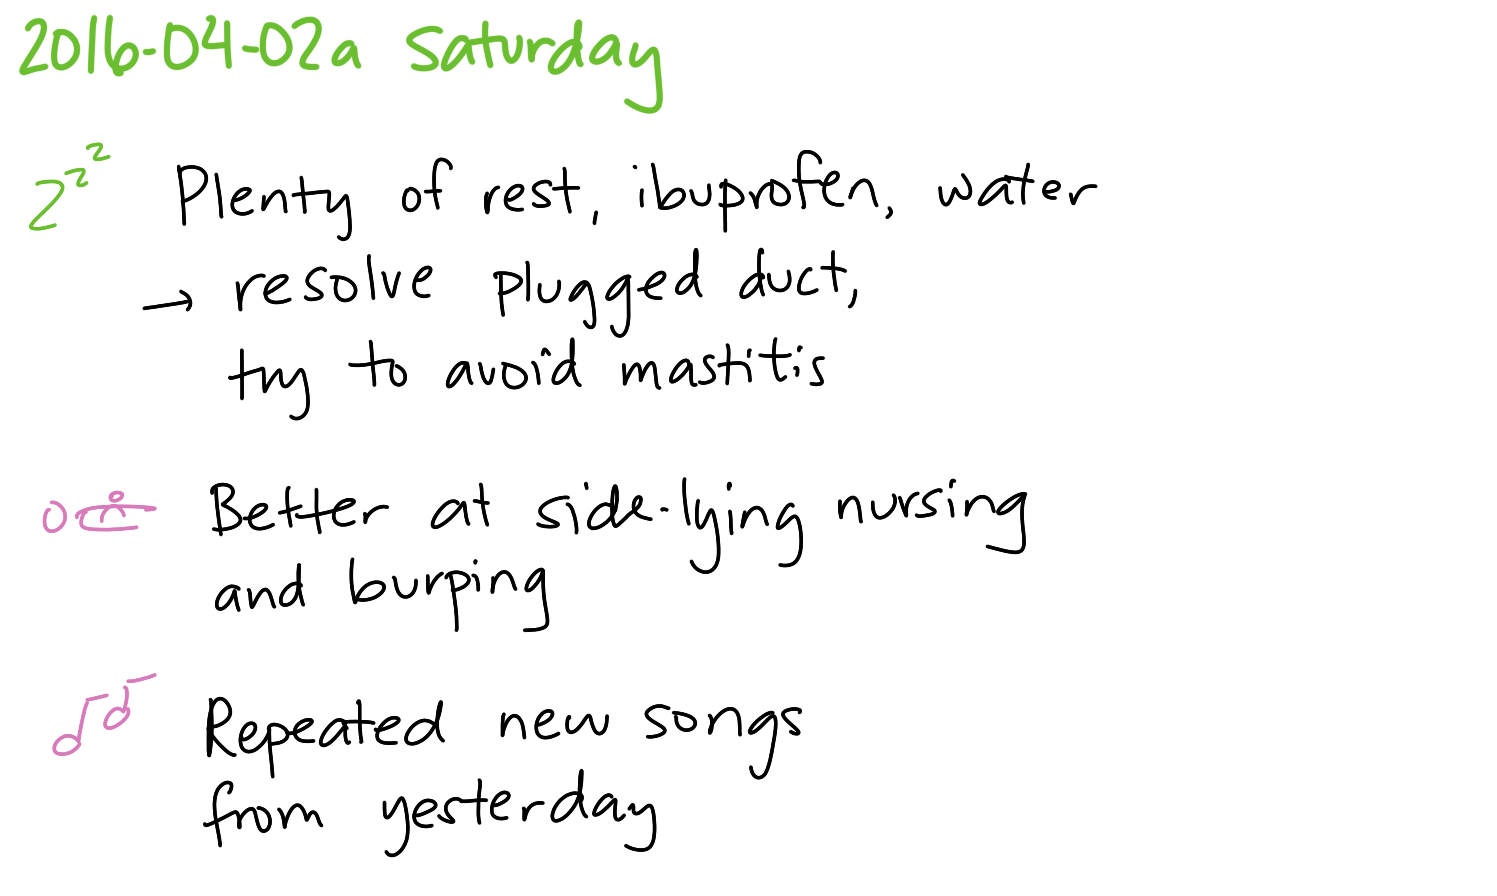 2016-04-02a Saturday -- index card #journal.png